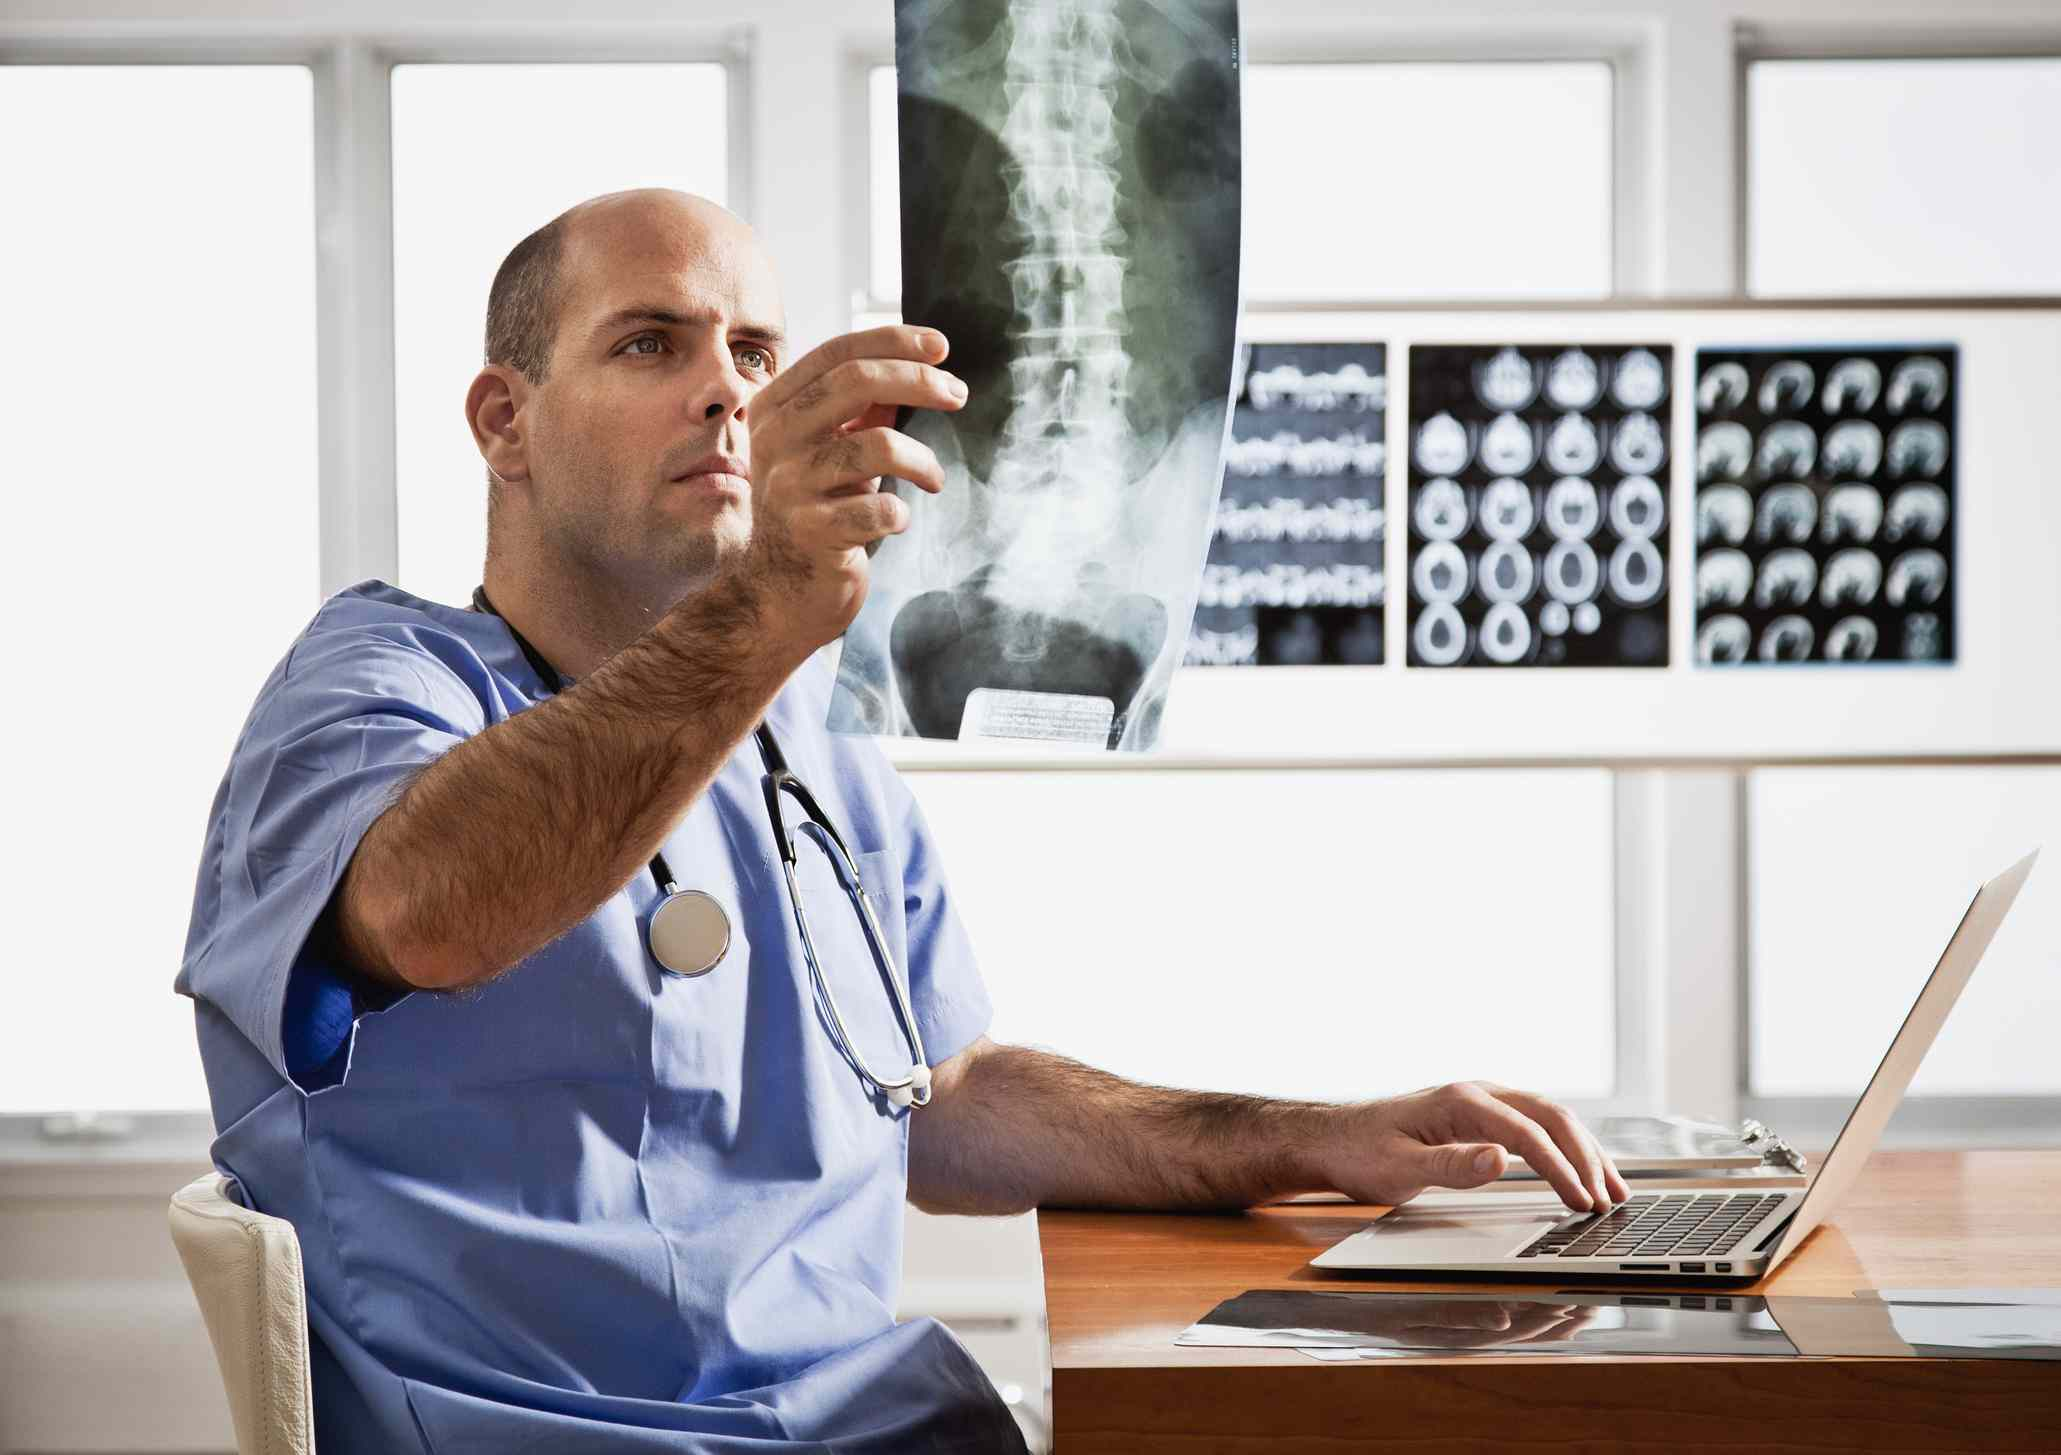 Young doctor in radiology clinic office Young doctor examining spinal chord x-ray in radiology clinic office